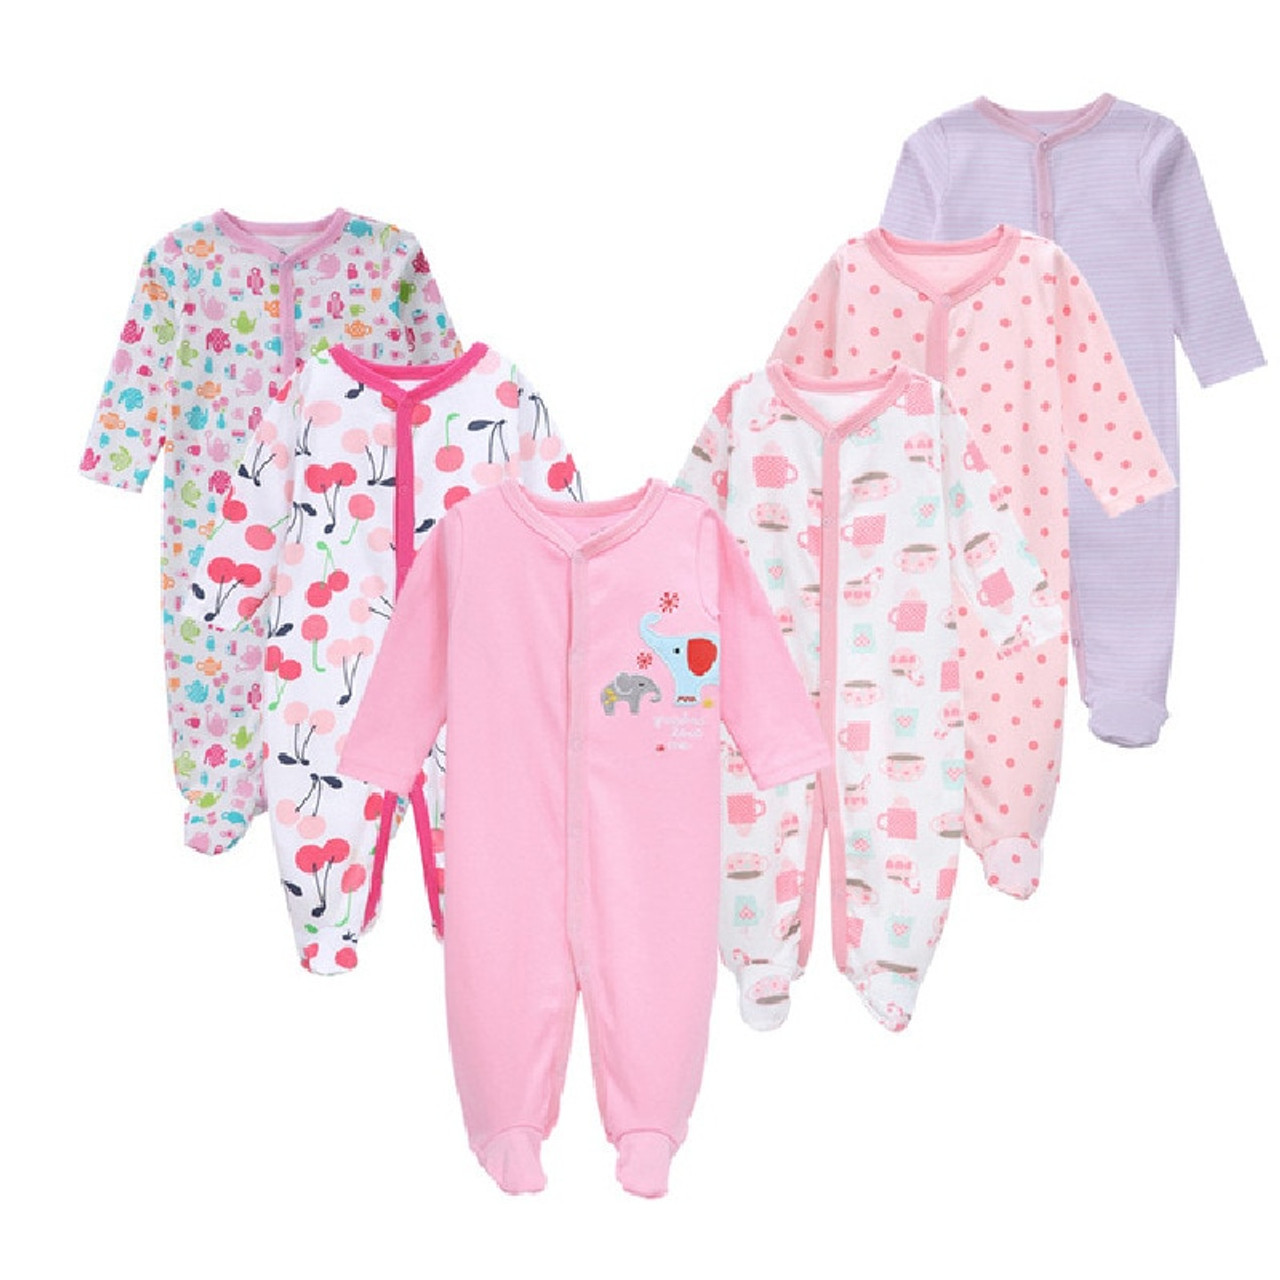 87ed5aff9434 6Pcs Newborn Baby Girl Romper Winter Baby Boy Jumpsuit 100% Cotton  Underwear Clothing Baby Rompers ...